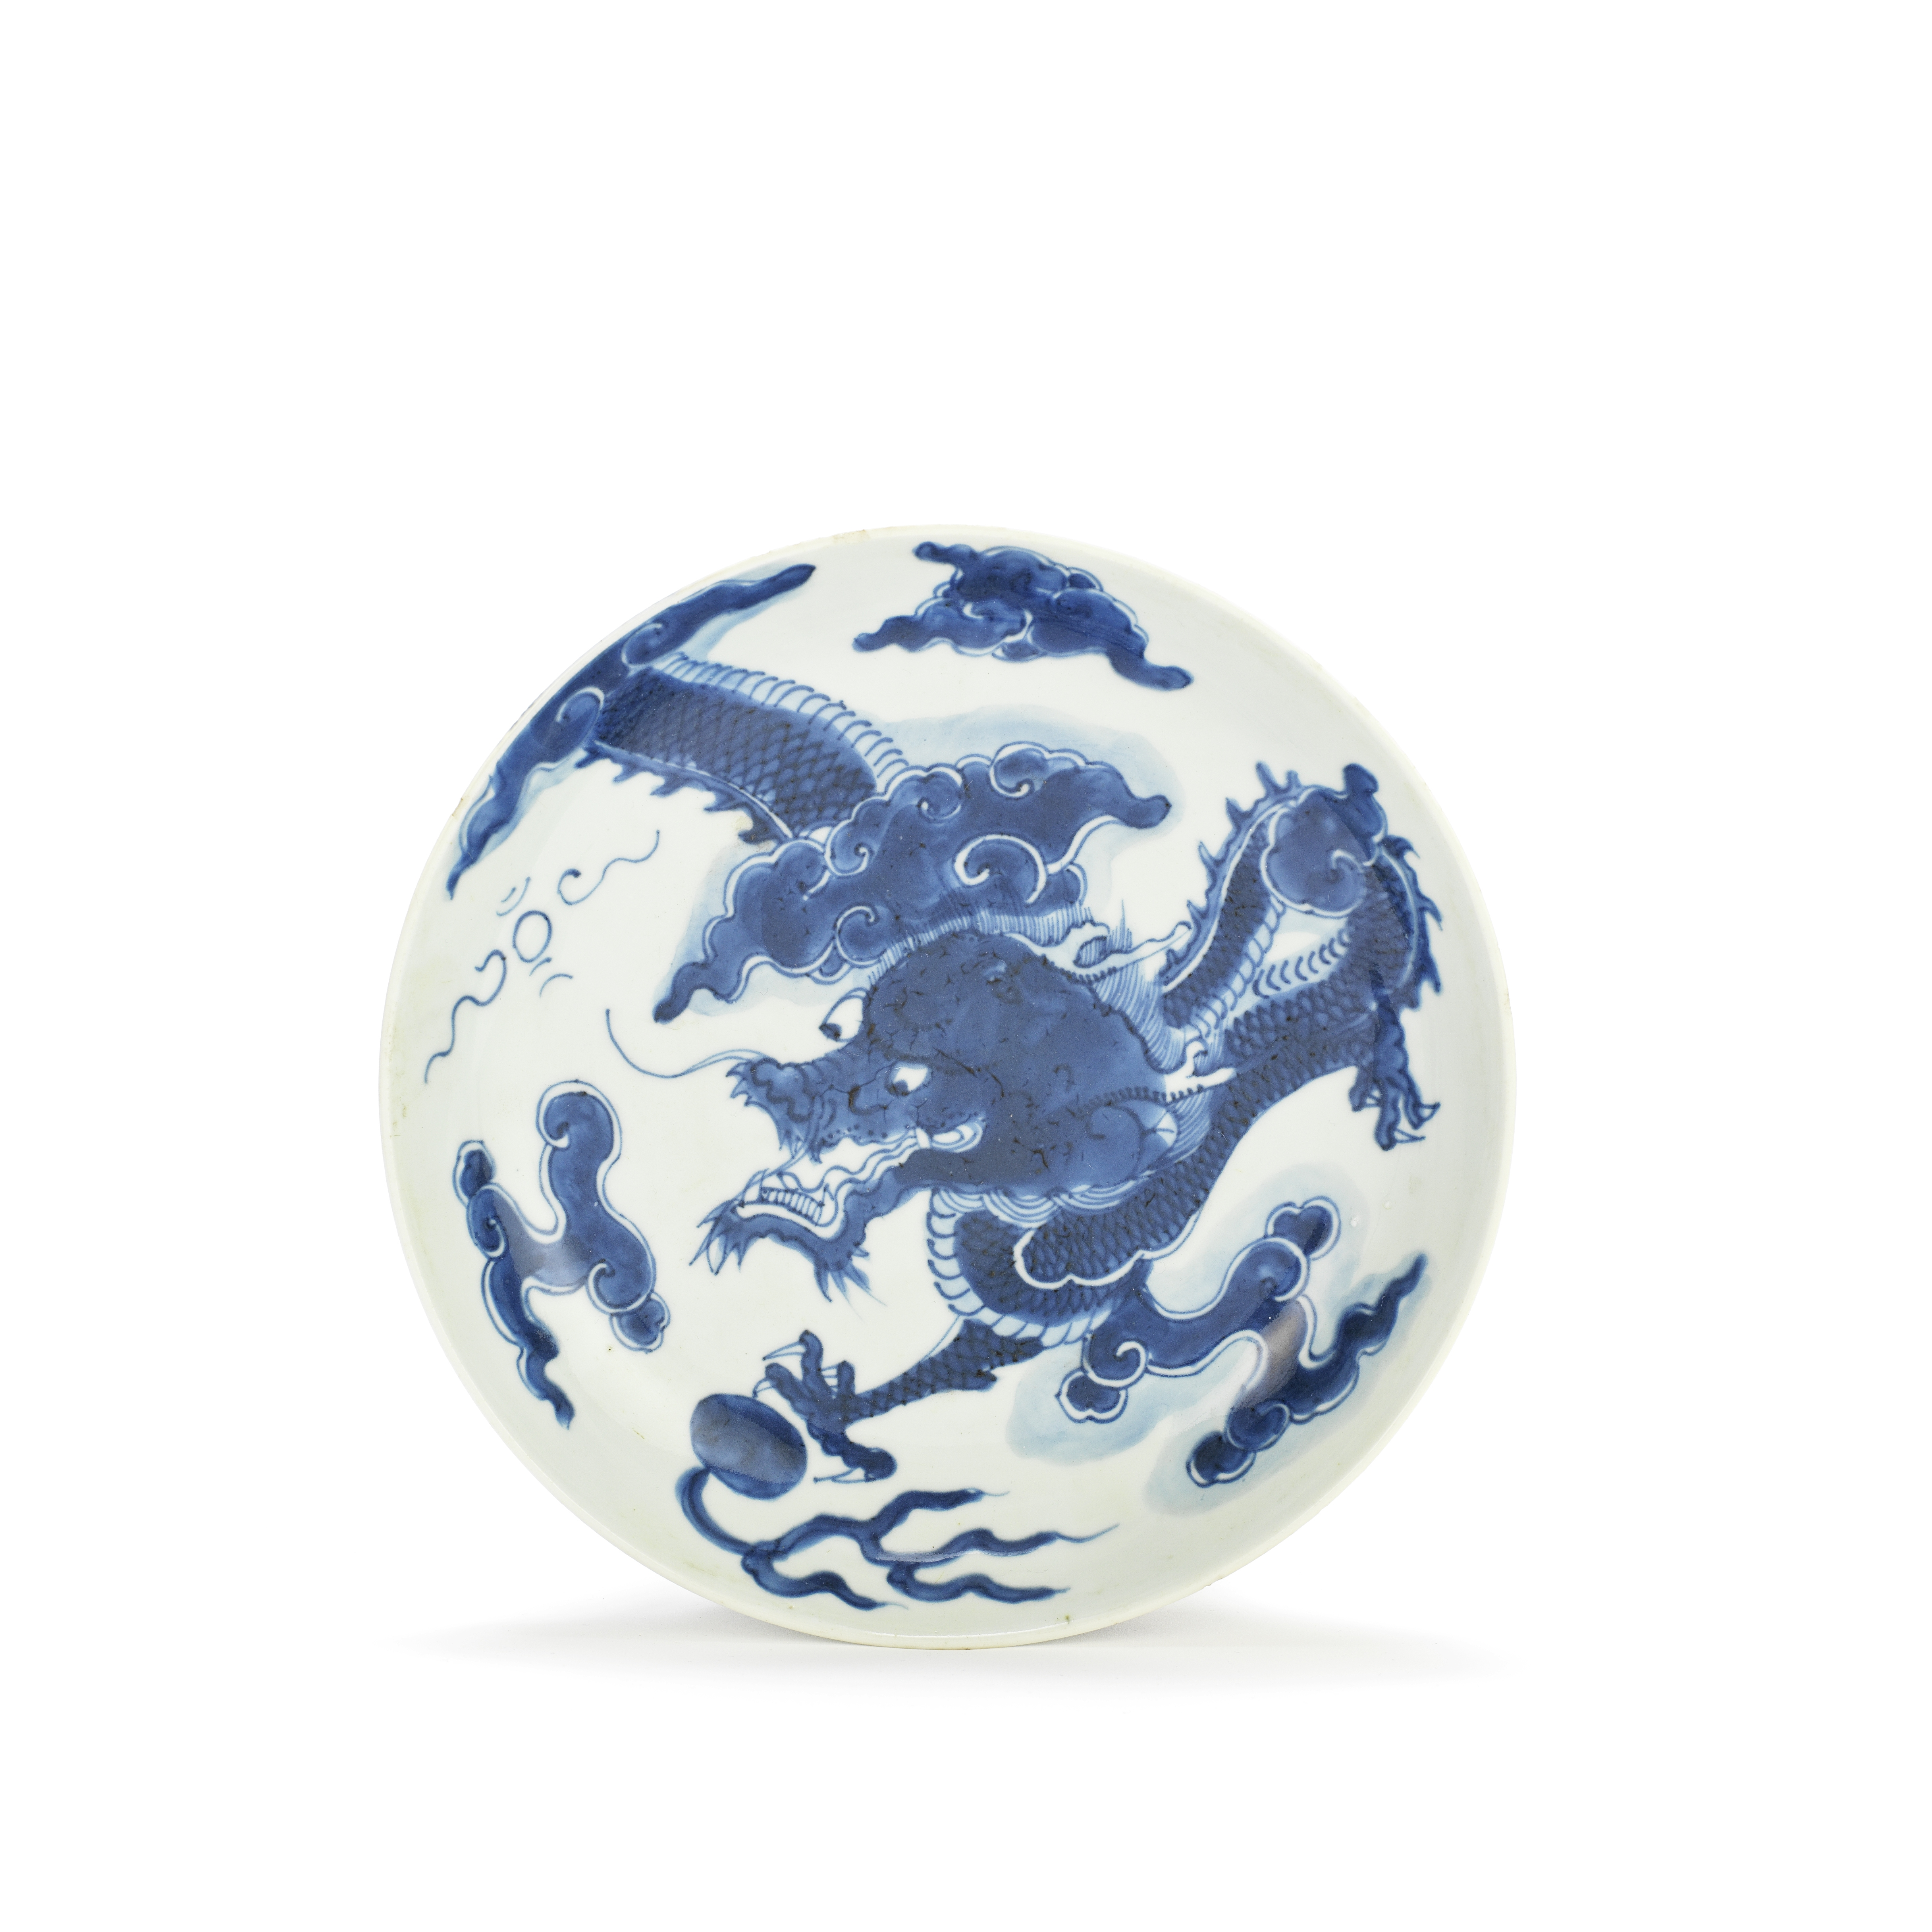 A BLUE AND WHITE 'DRAGON' SAUCER DISH 18th century